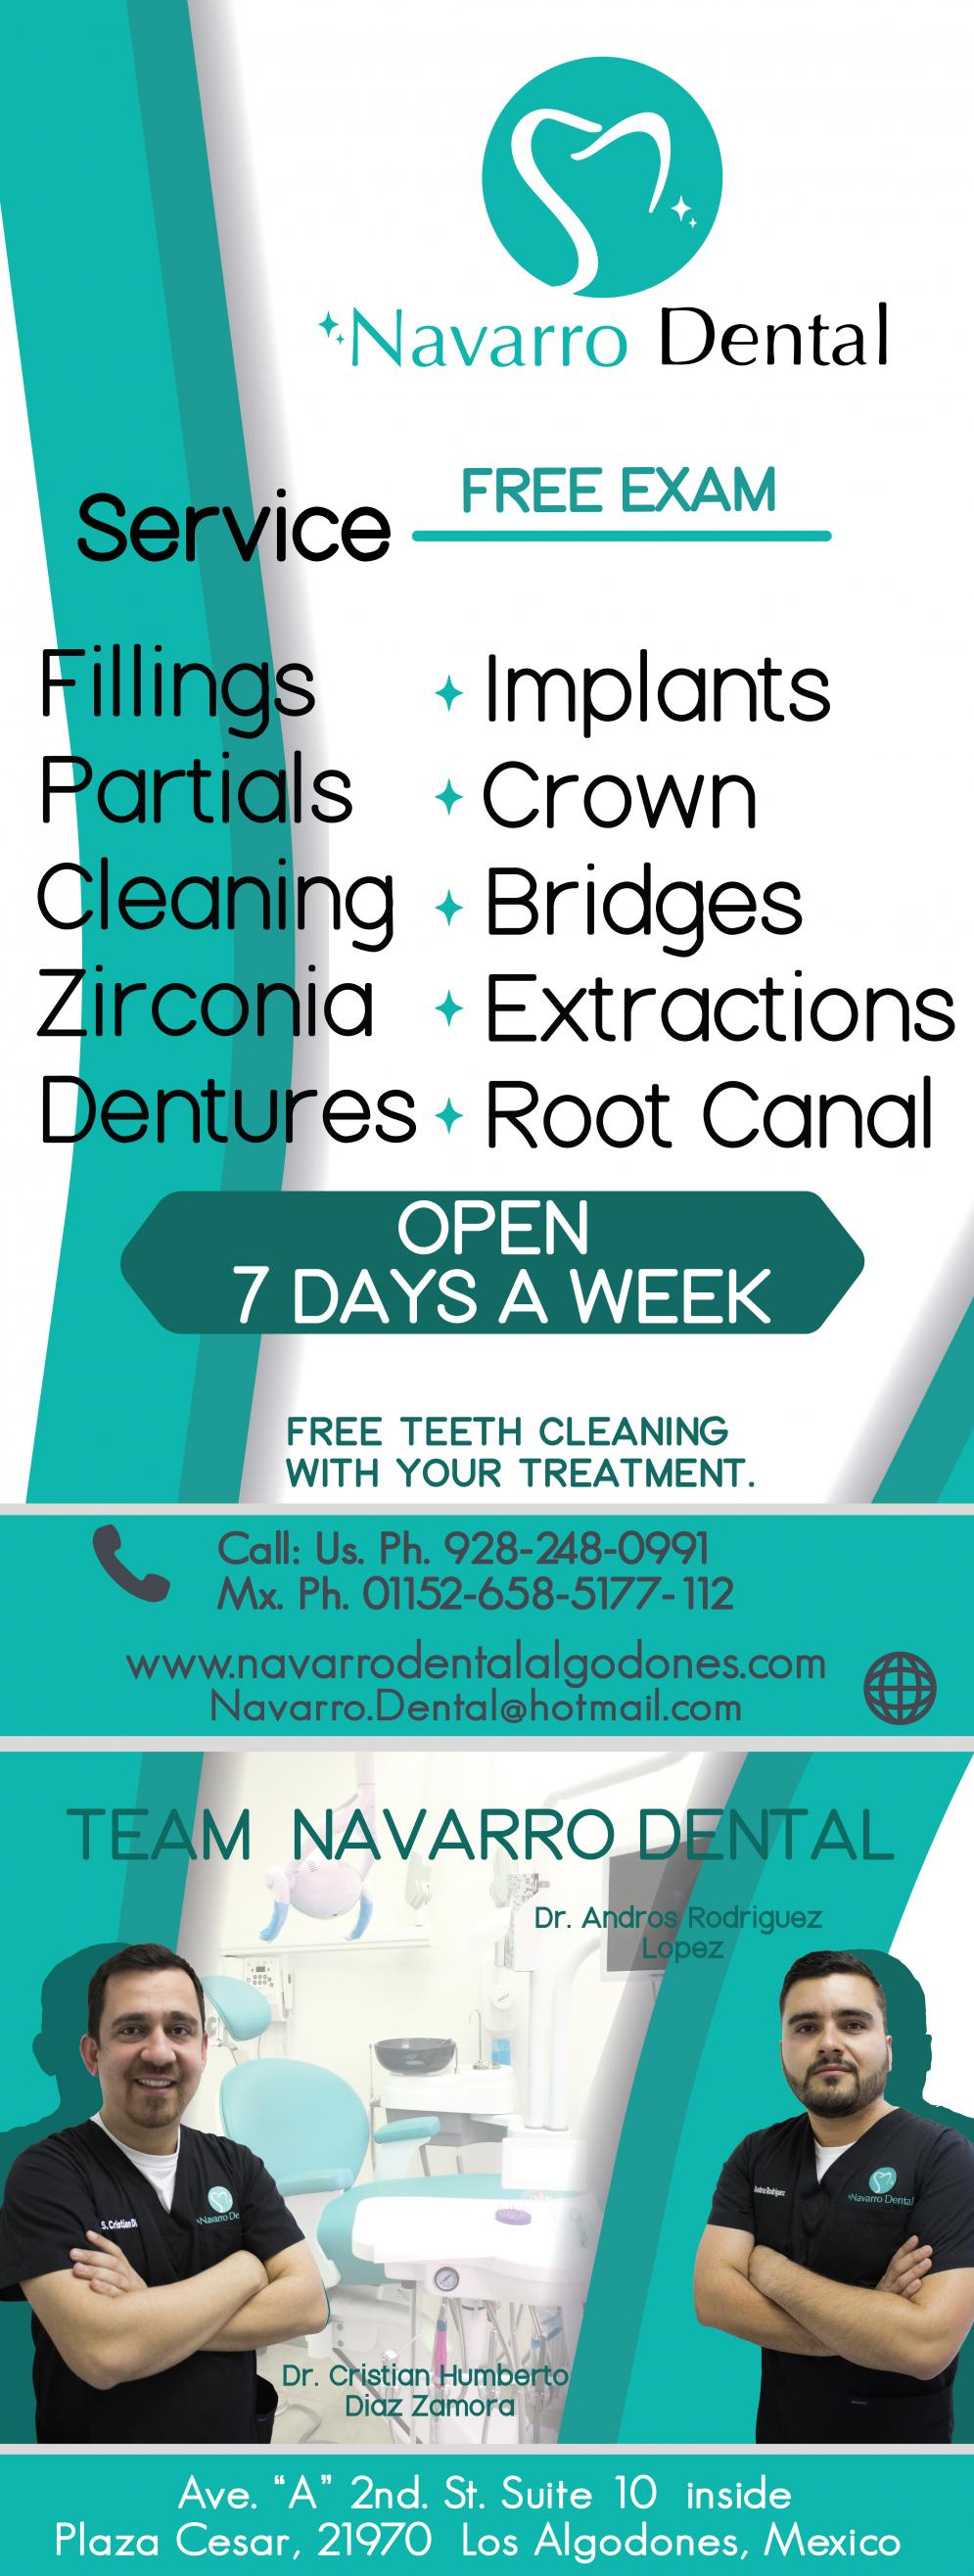 Navarro Dental in Algodones  in Algodones  Implants, Crown, Bridges, Extractions. Implants Crown Bridges Extractions dentist